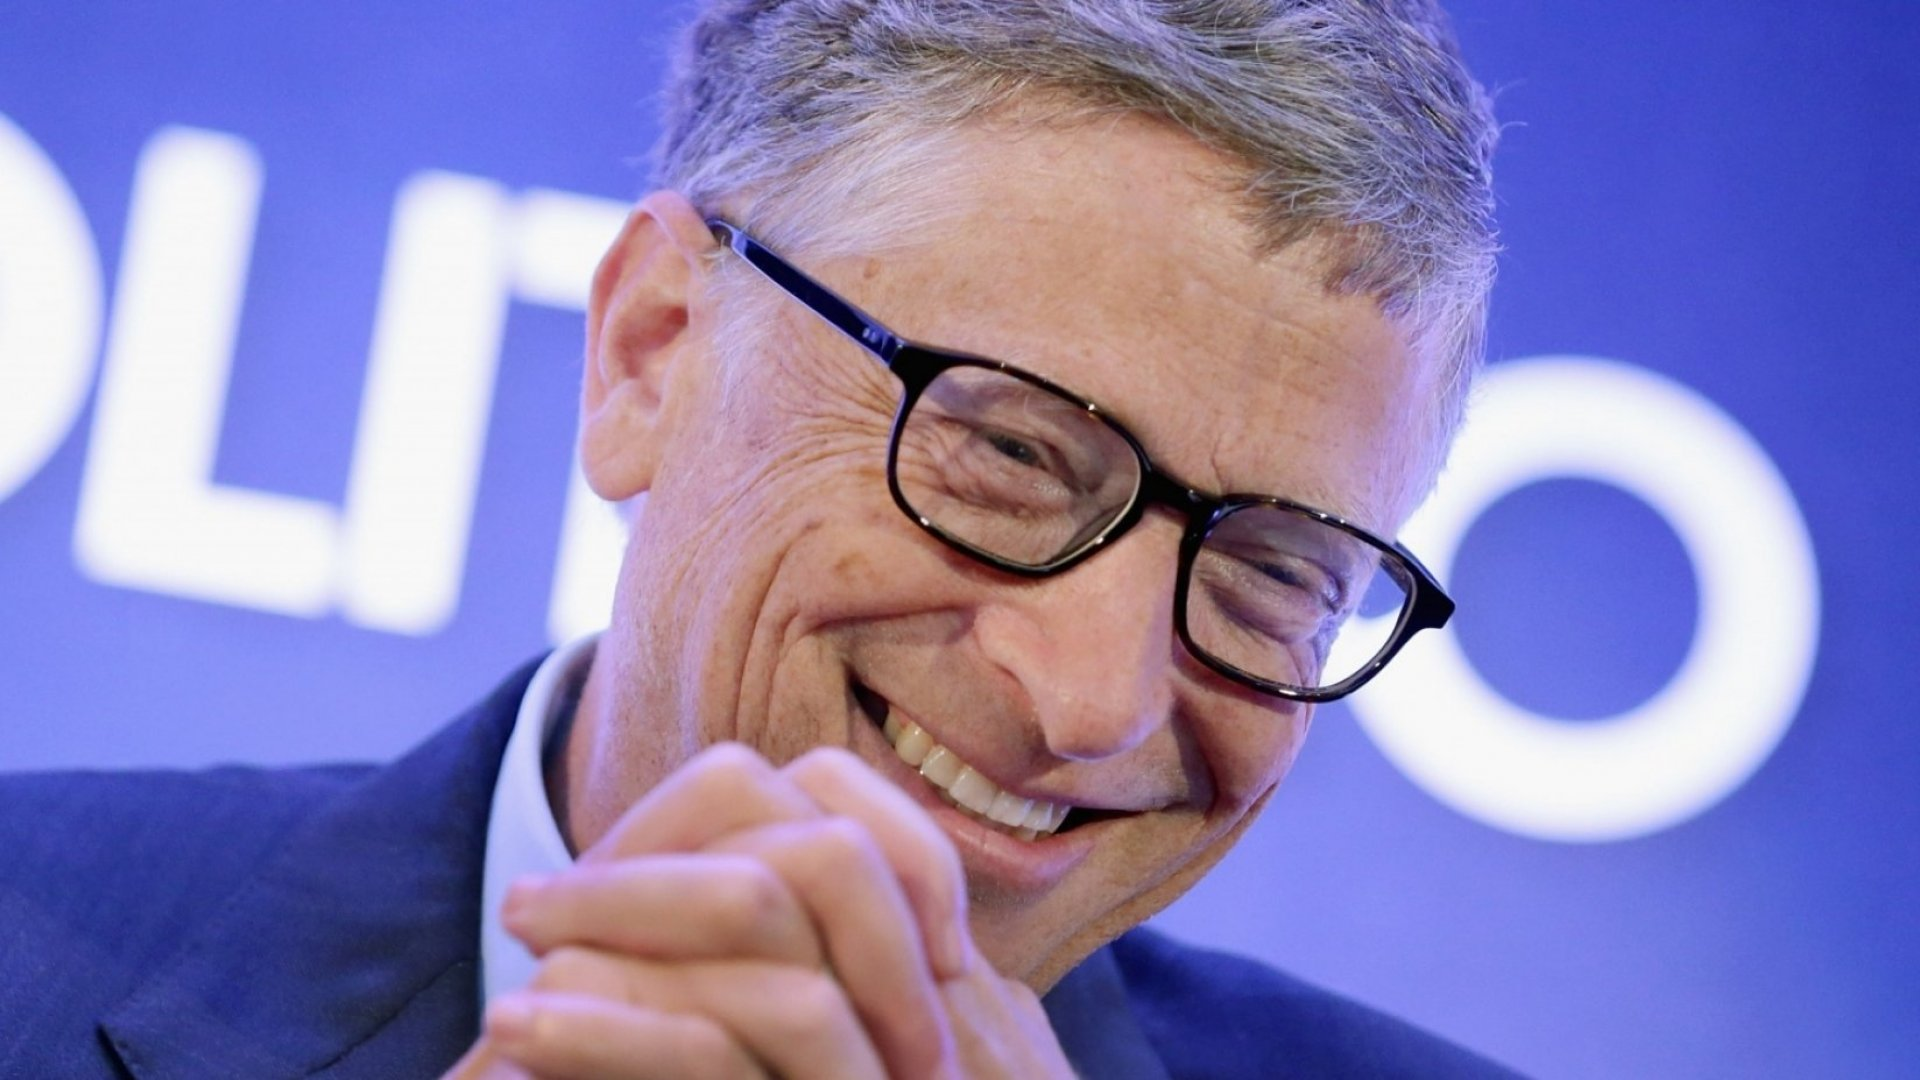 5 Books Bill Gates Wants You to Read This Summer (and 1 Big Lesson He Wants You to Learn From Them)